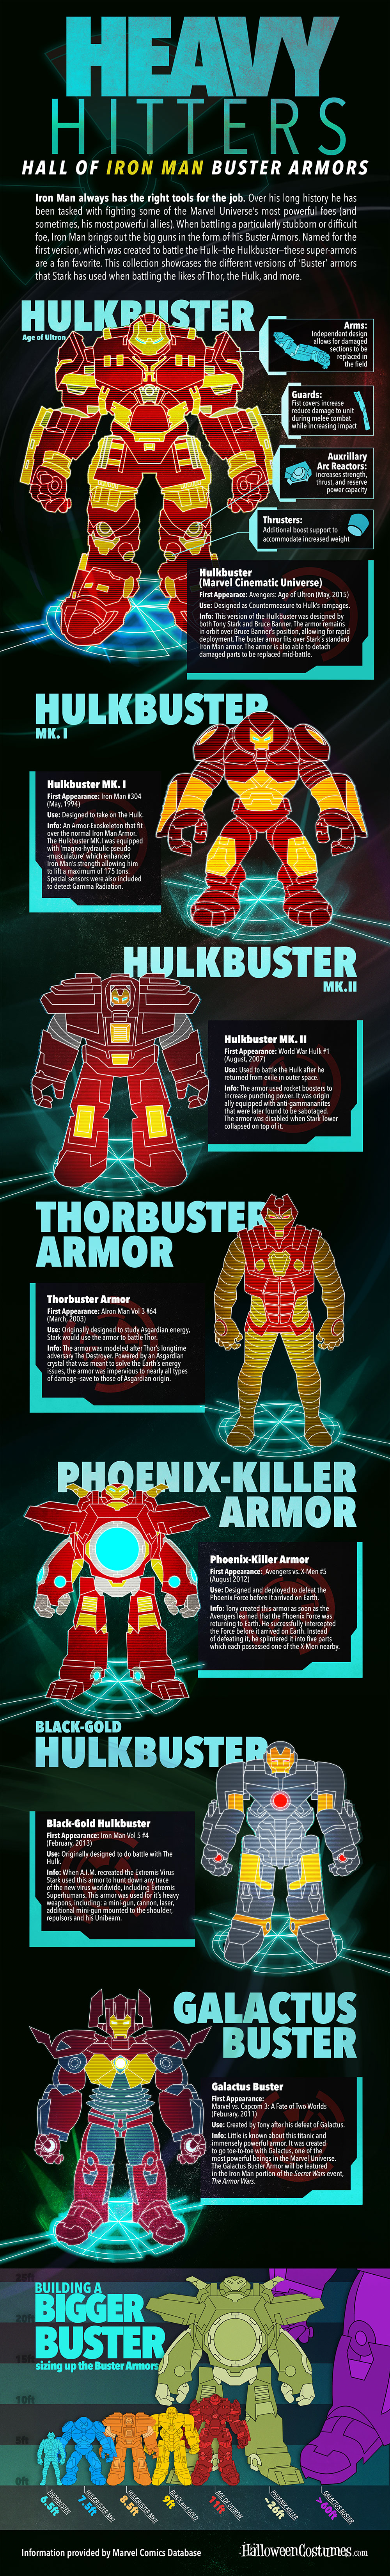 Avengers Age of Ultron Hulkbuster Infographic